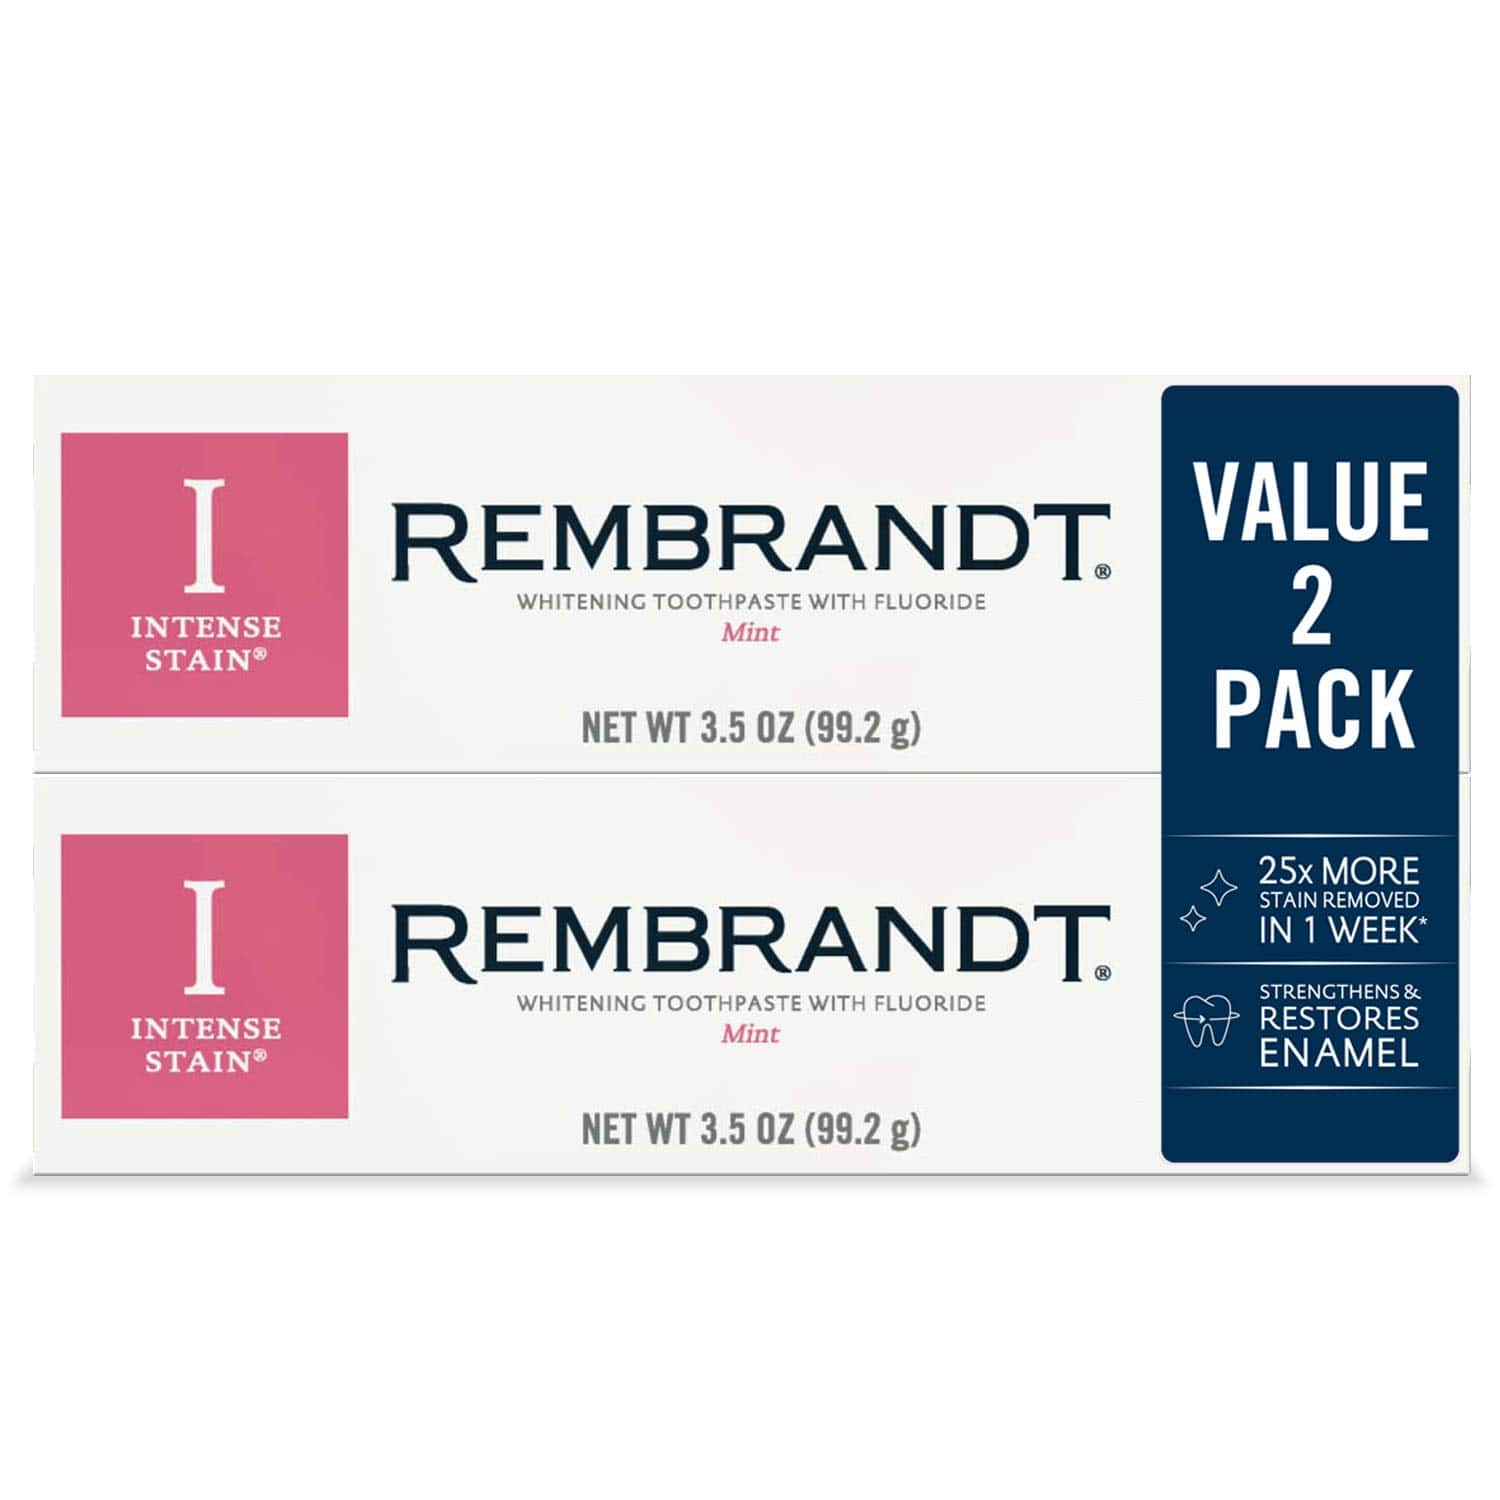 2-Pack 3.5-Oz Rembrandt Intense Stain Whitening Toothpaste (Mint) $6.43 + Free S/H